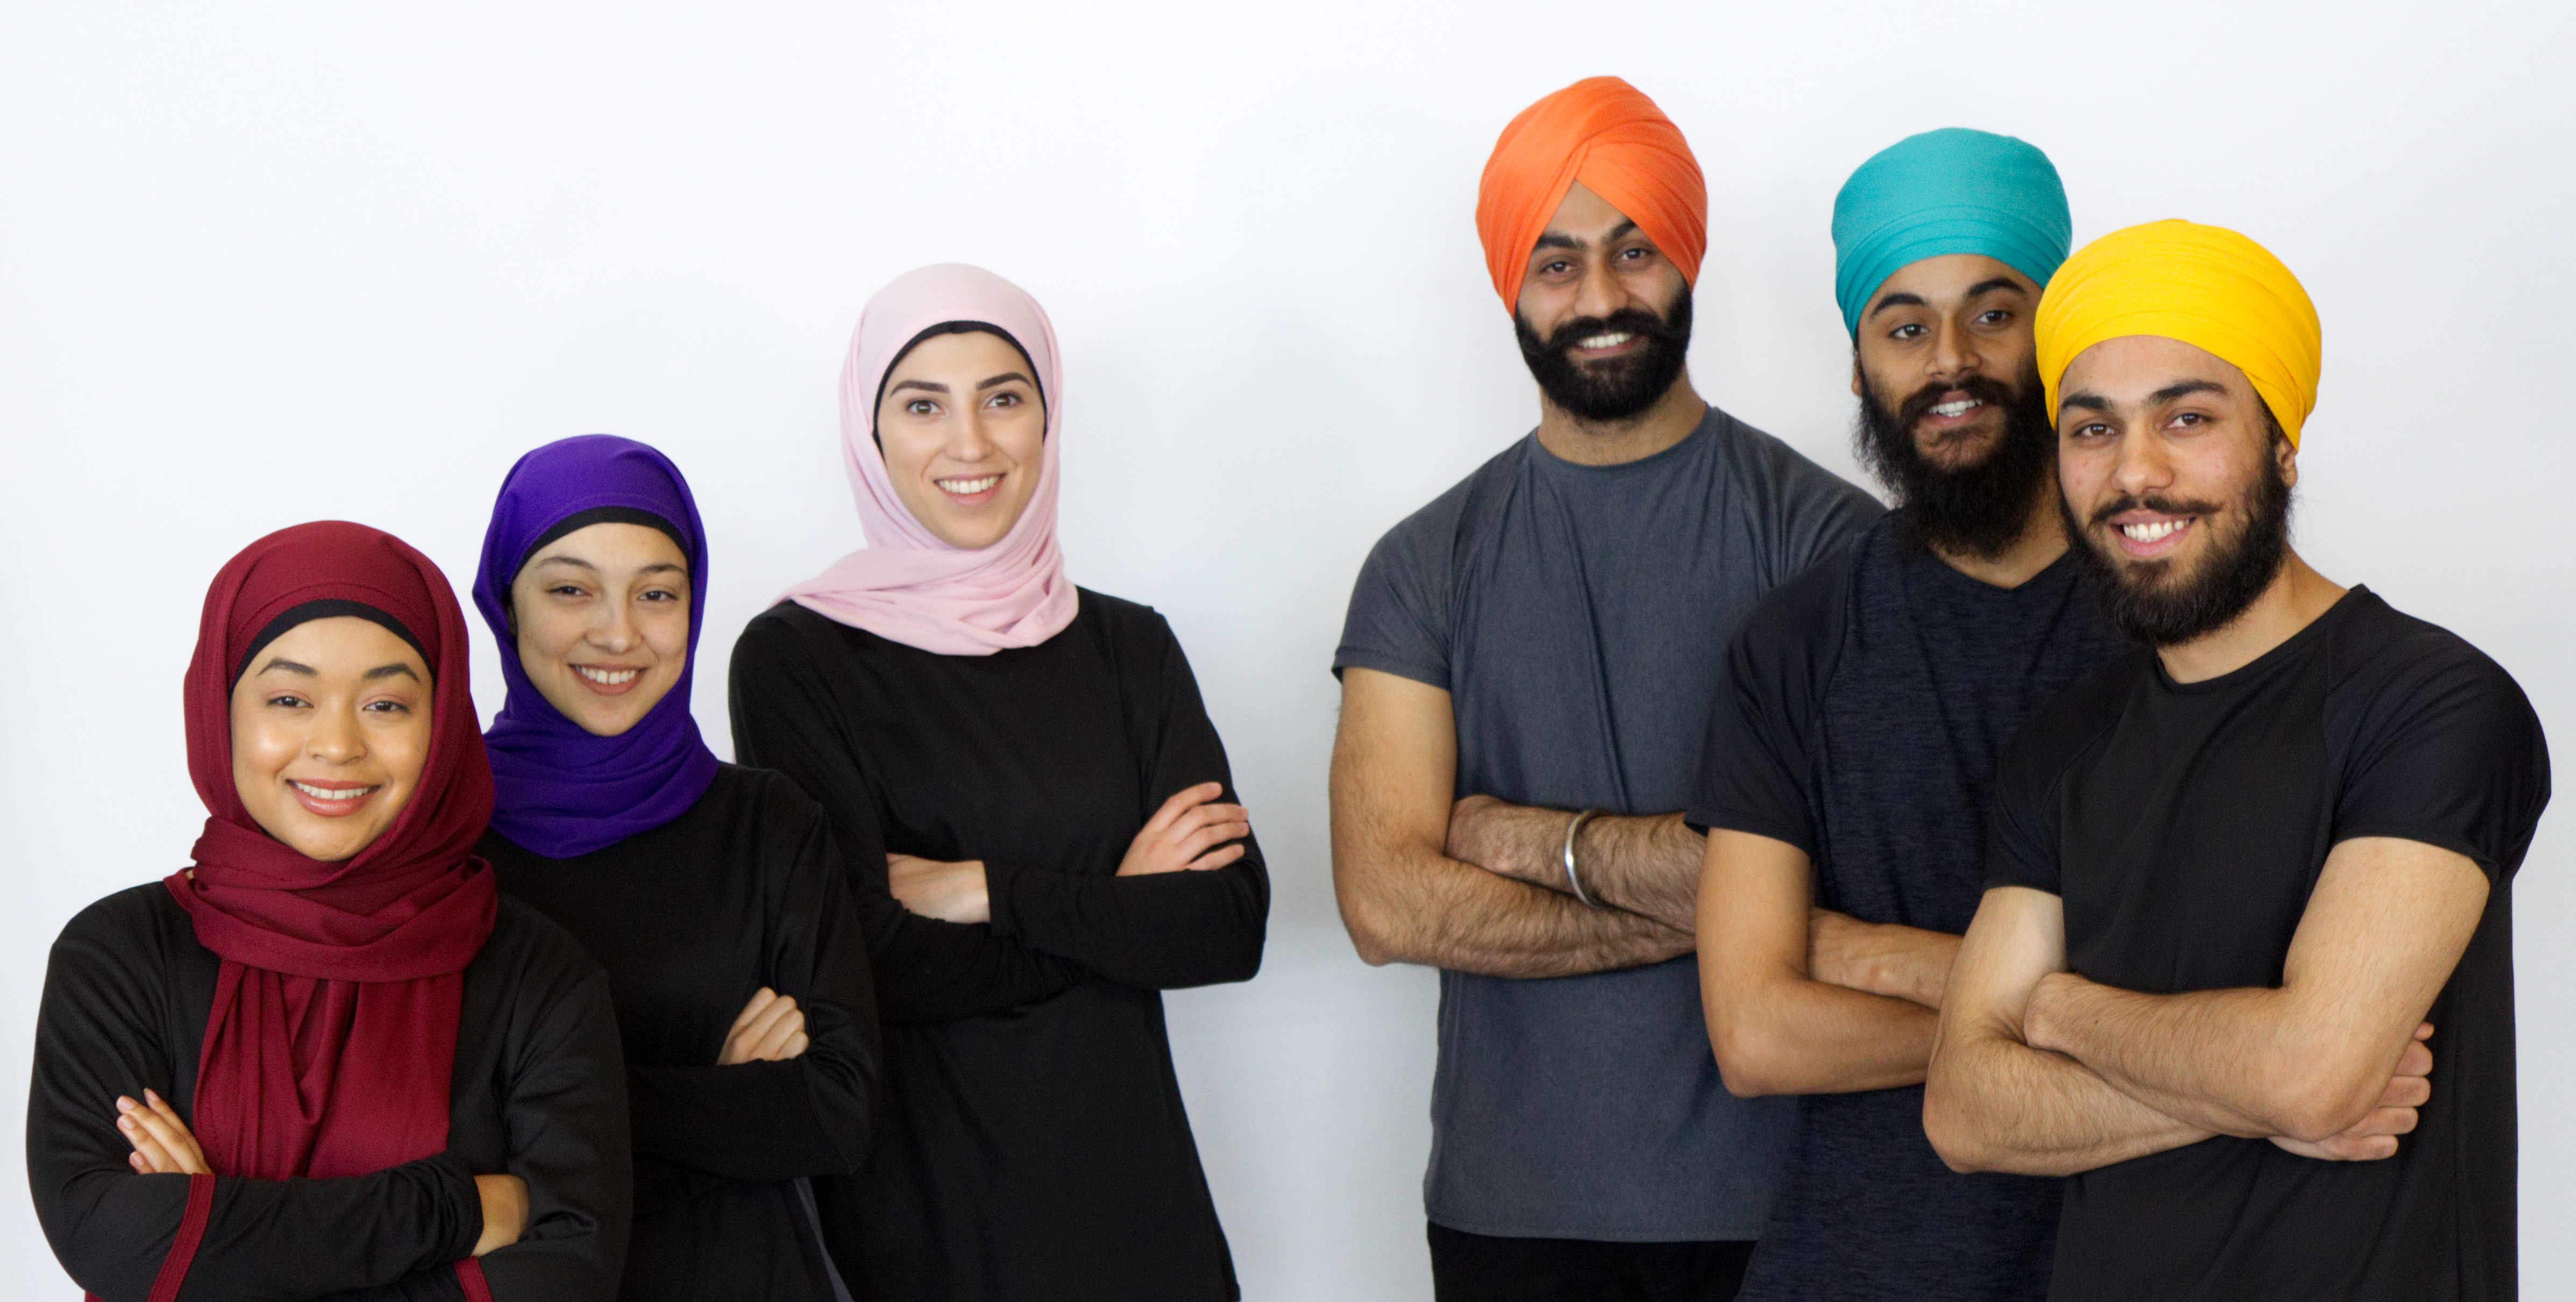 Thawrih team members: Sawsan Abu-Oshaibah (centre in pink hijab), Pavneet Ahluwalia (centre in turquois...